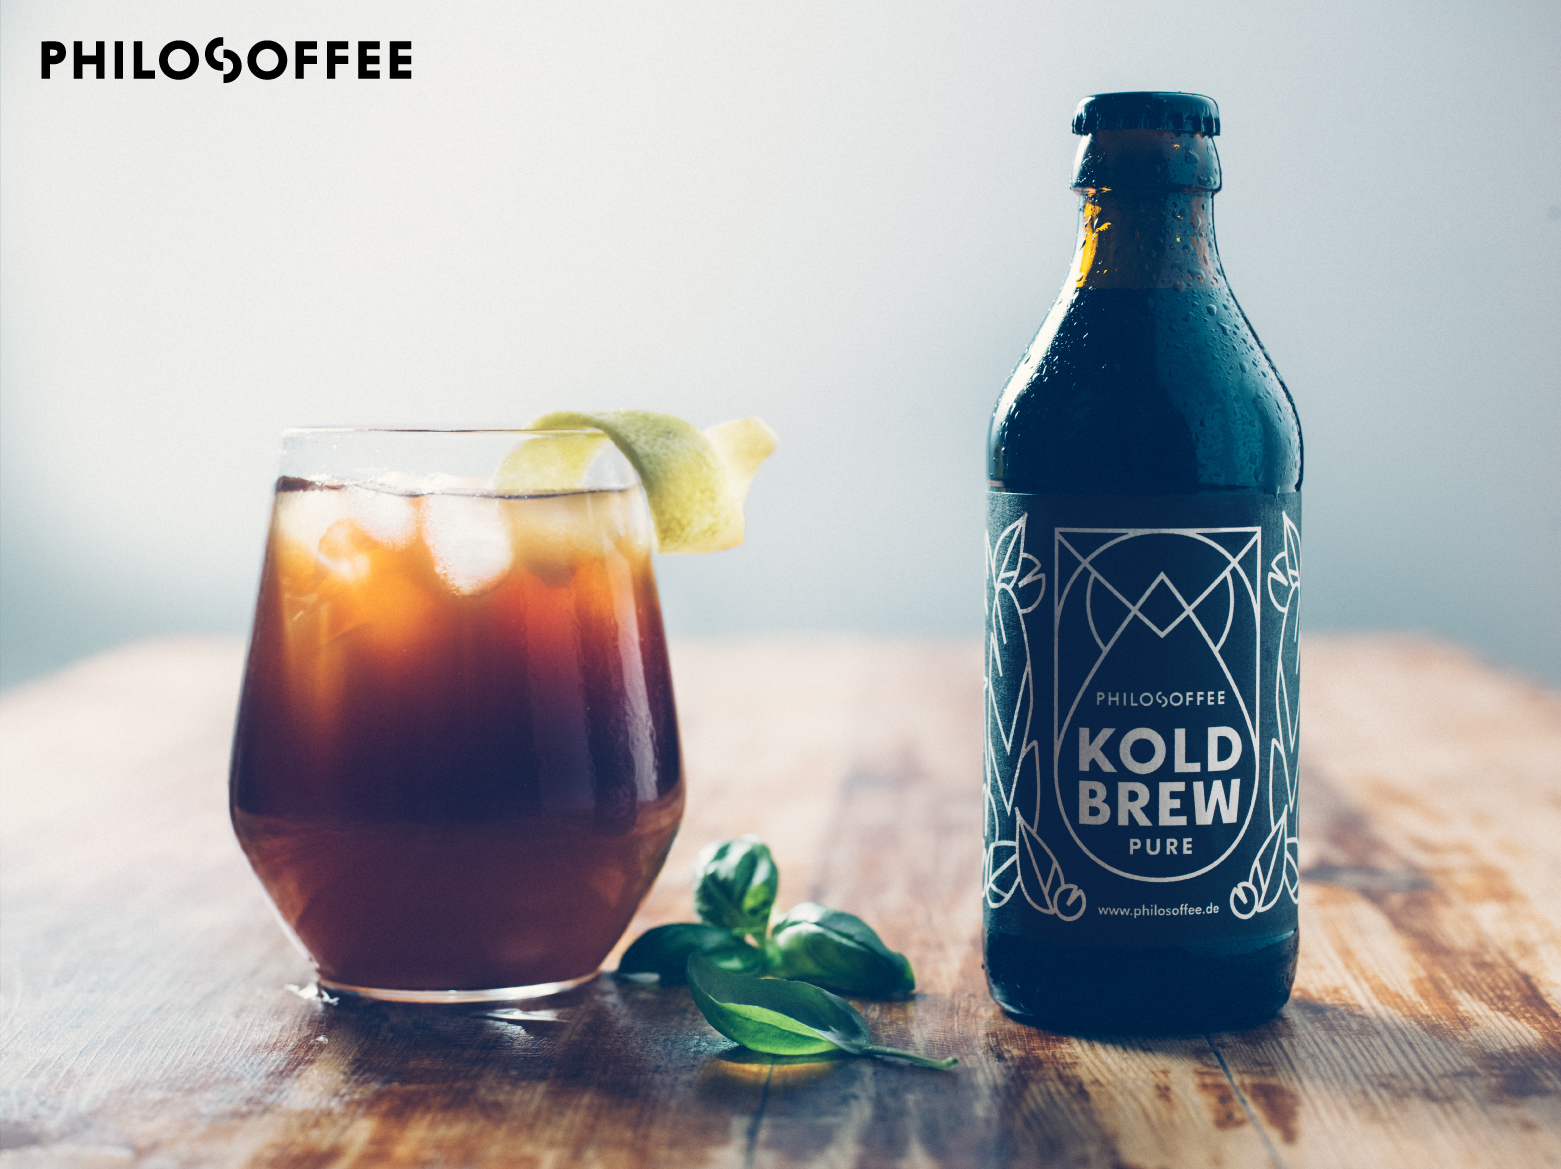 Philosoffee Koldbrew